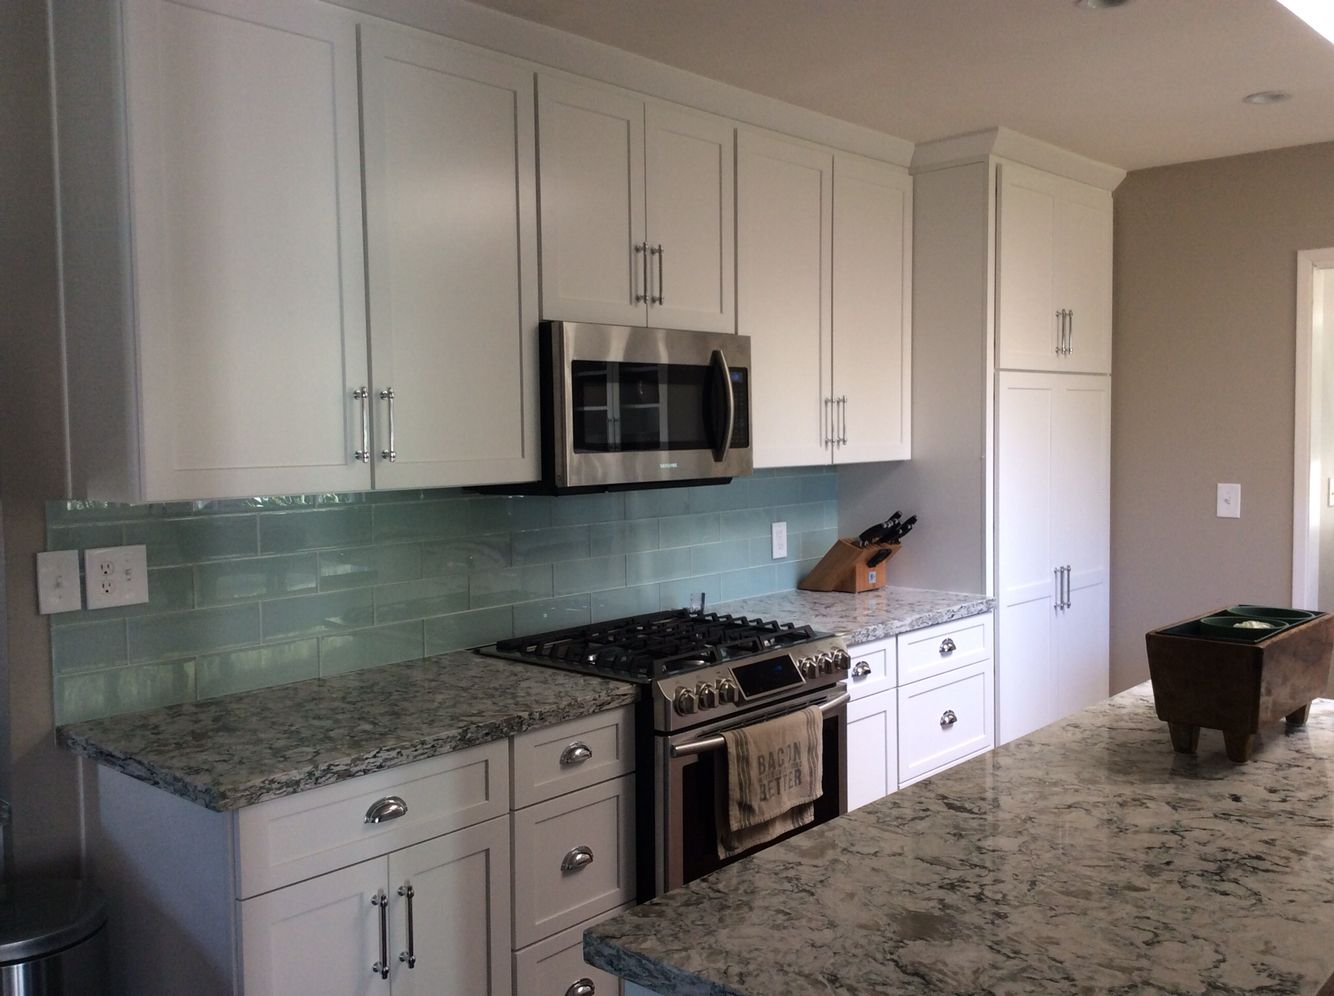 diamond kitchen cabinets Cambria praa sands white shaker diamond cabinets tilebar sea foam glass backsplash stainless